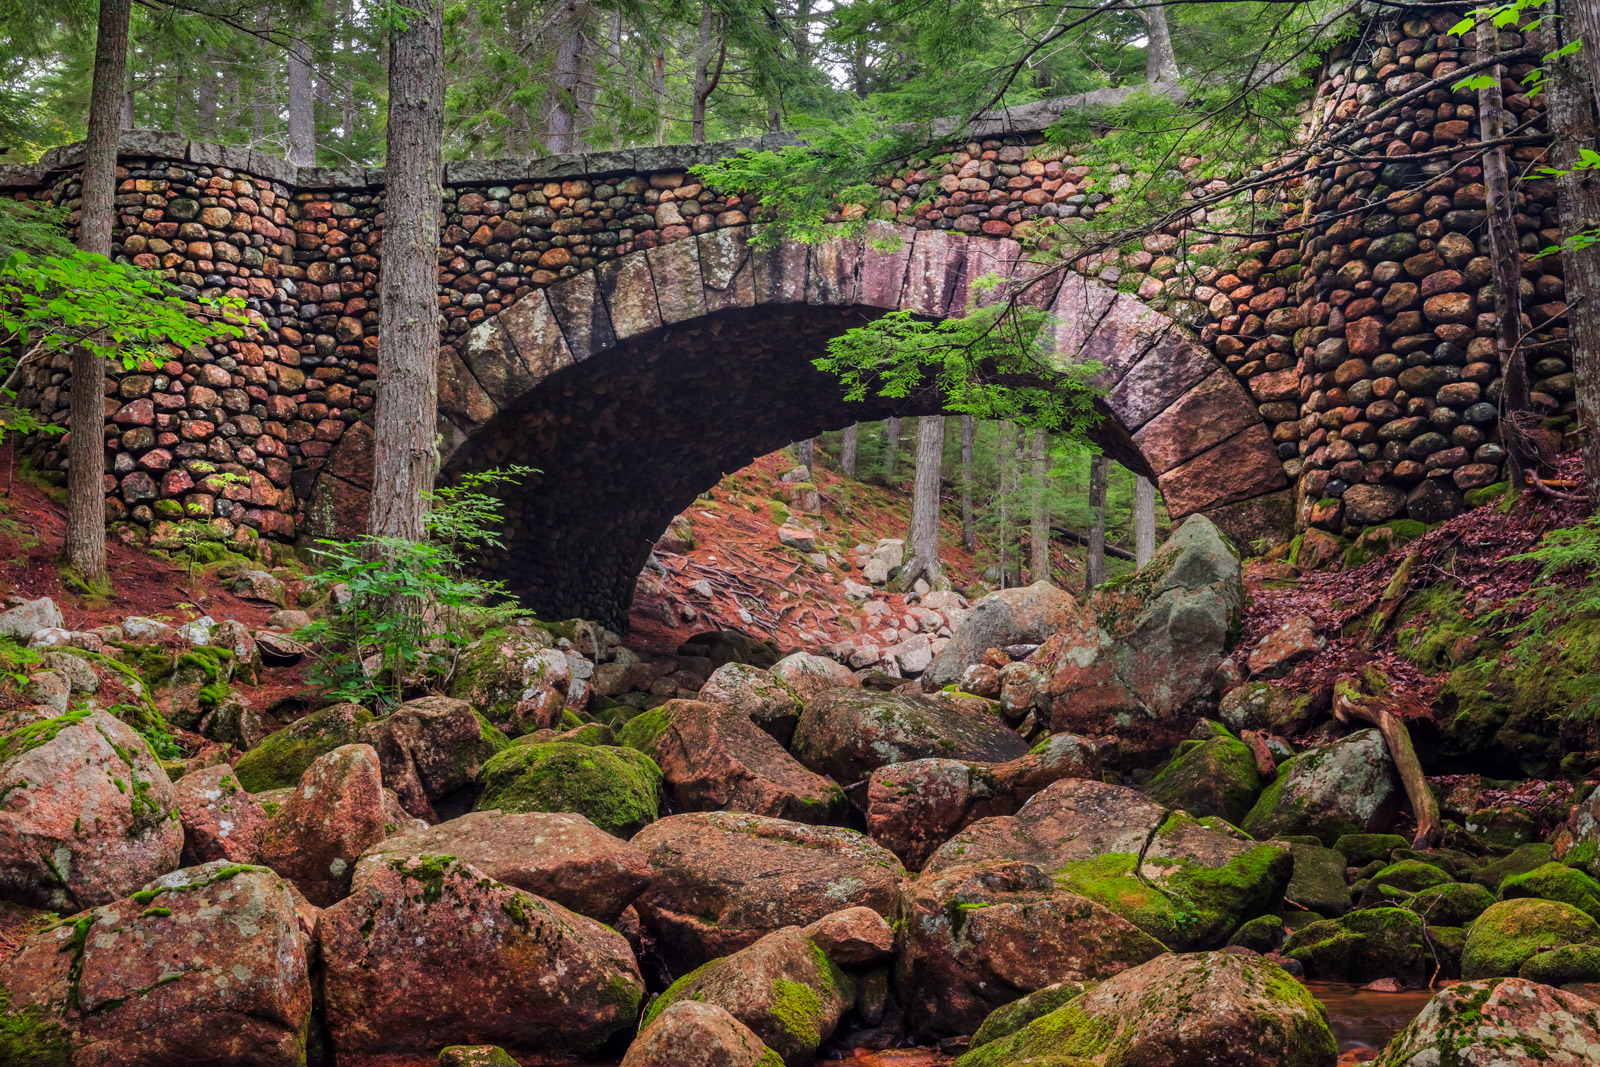 A Limited Edition, Fine Art  photograph of the charming Cobblestone Bridge spanning a river of boulders in Acadia National Park...